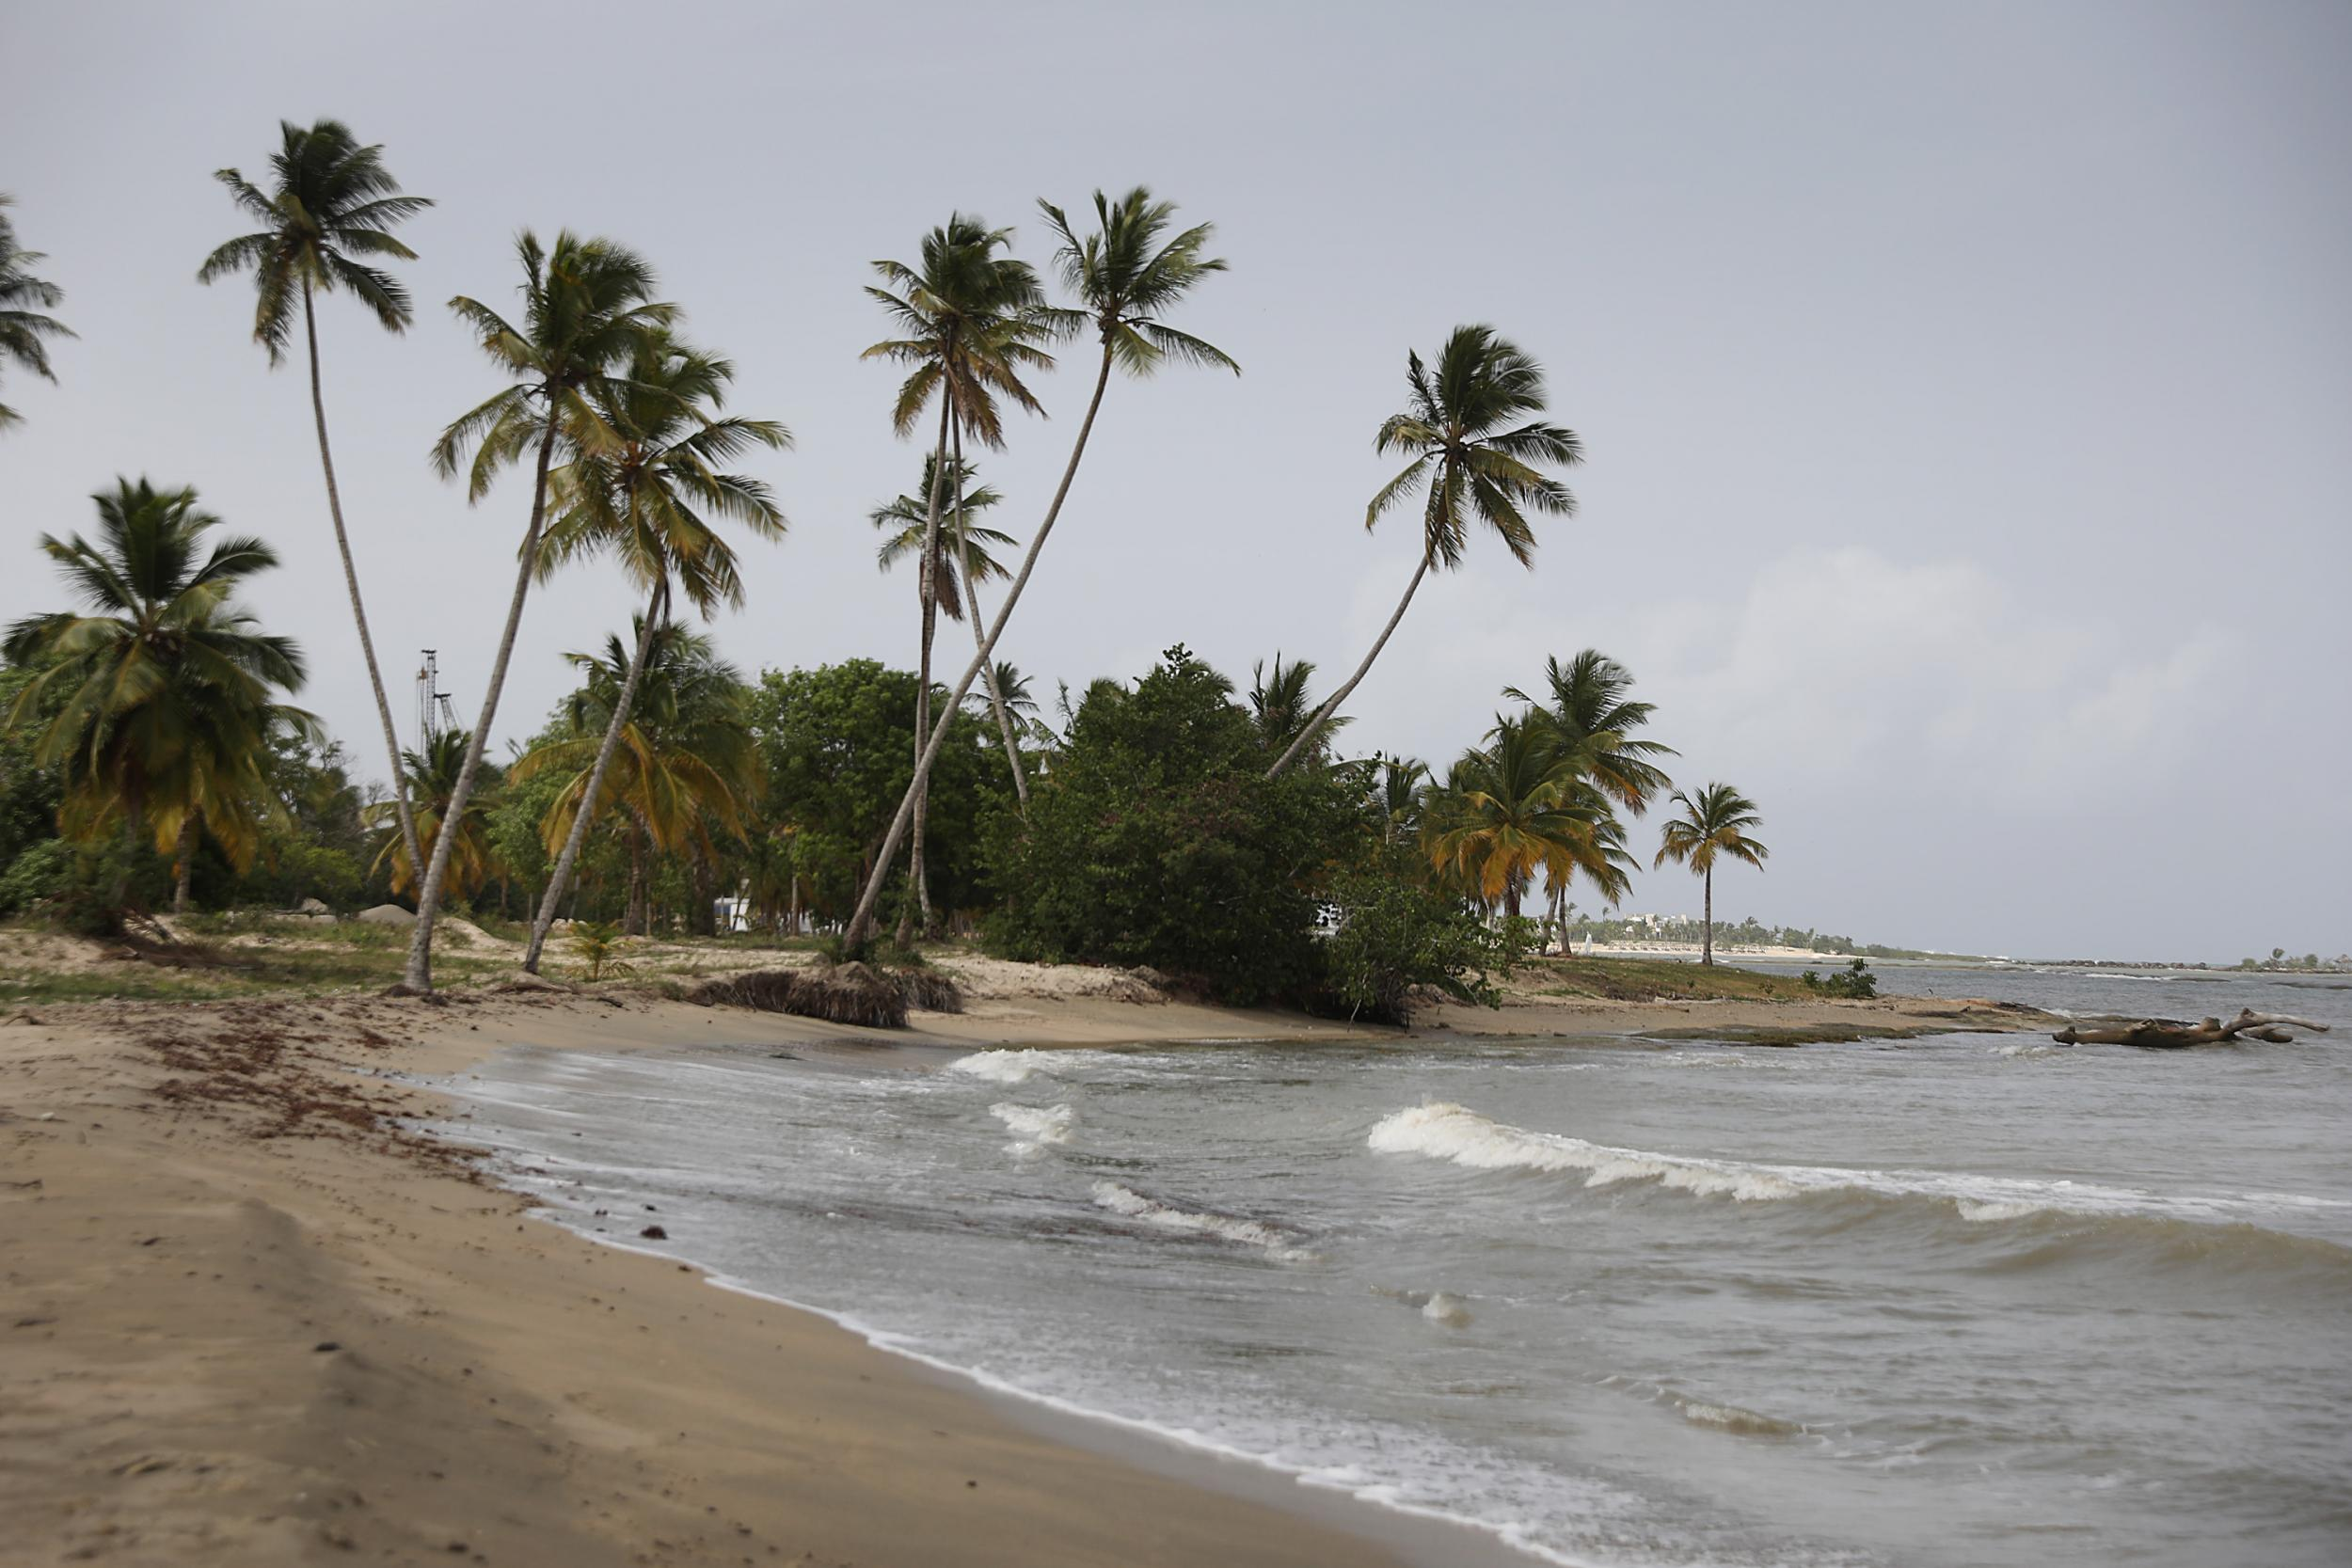 Dominican Republic - latest news, breaking stories and comment - The